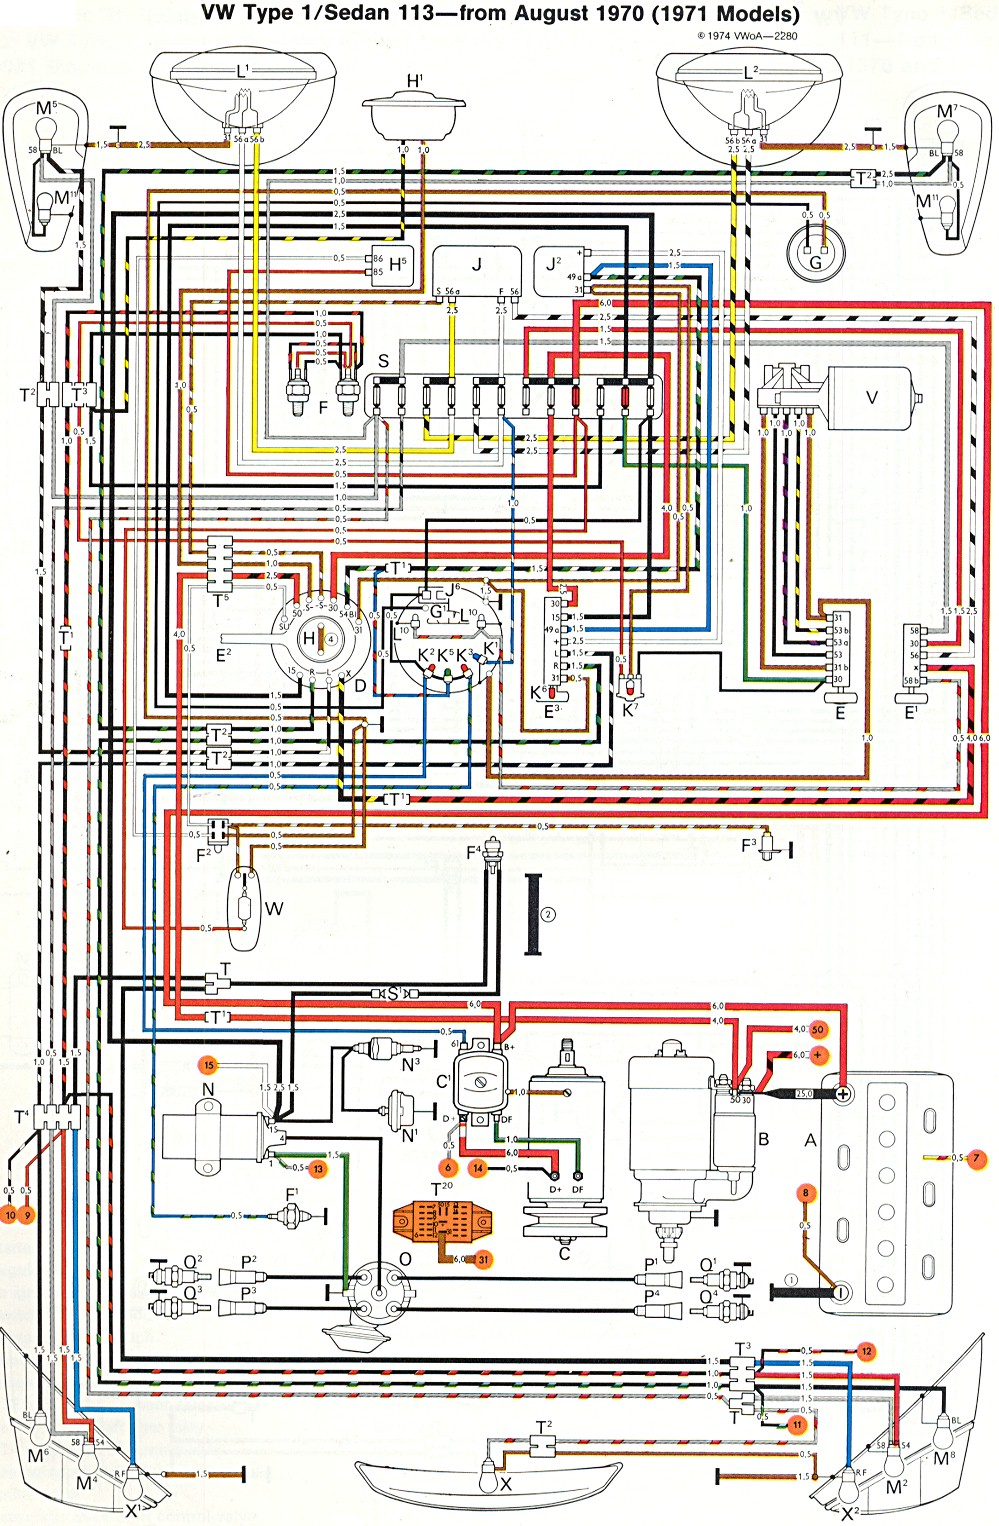 bug_super_71 2004 vw beetle wiring diagram 2004 vw beetle transmission problems 2000 vw beetle fuse diagram at crackthecode.co